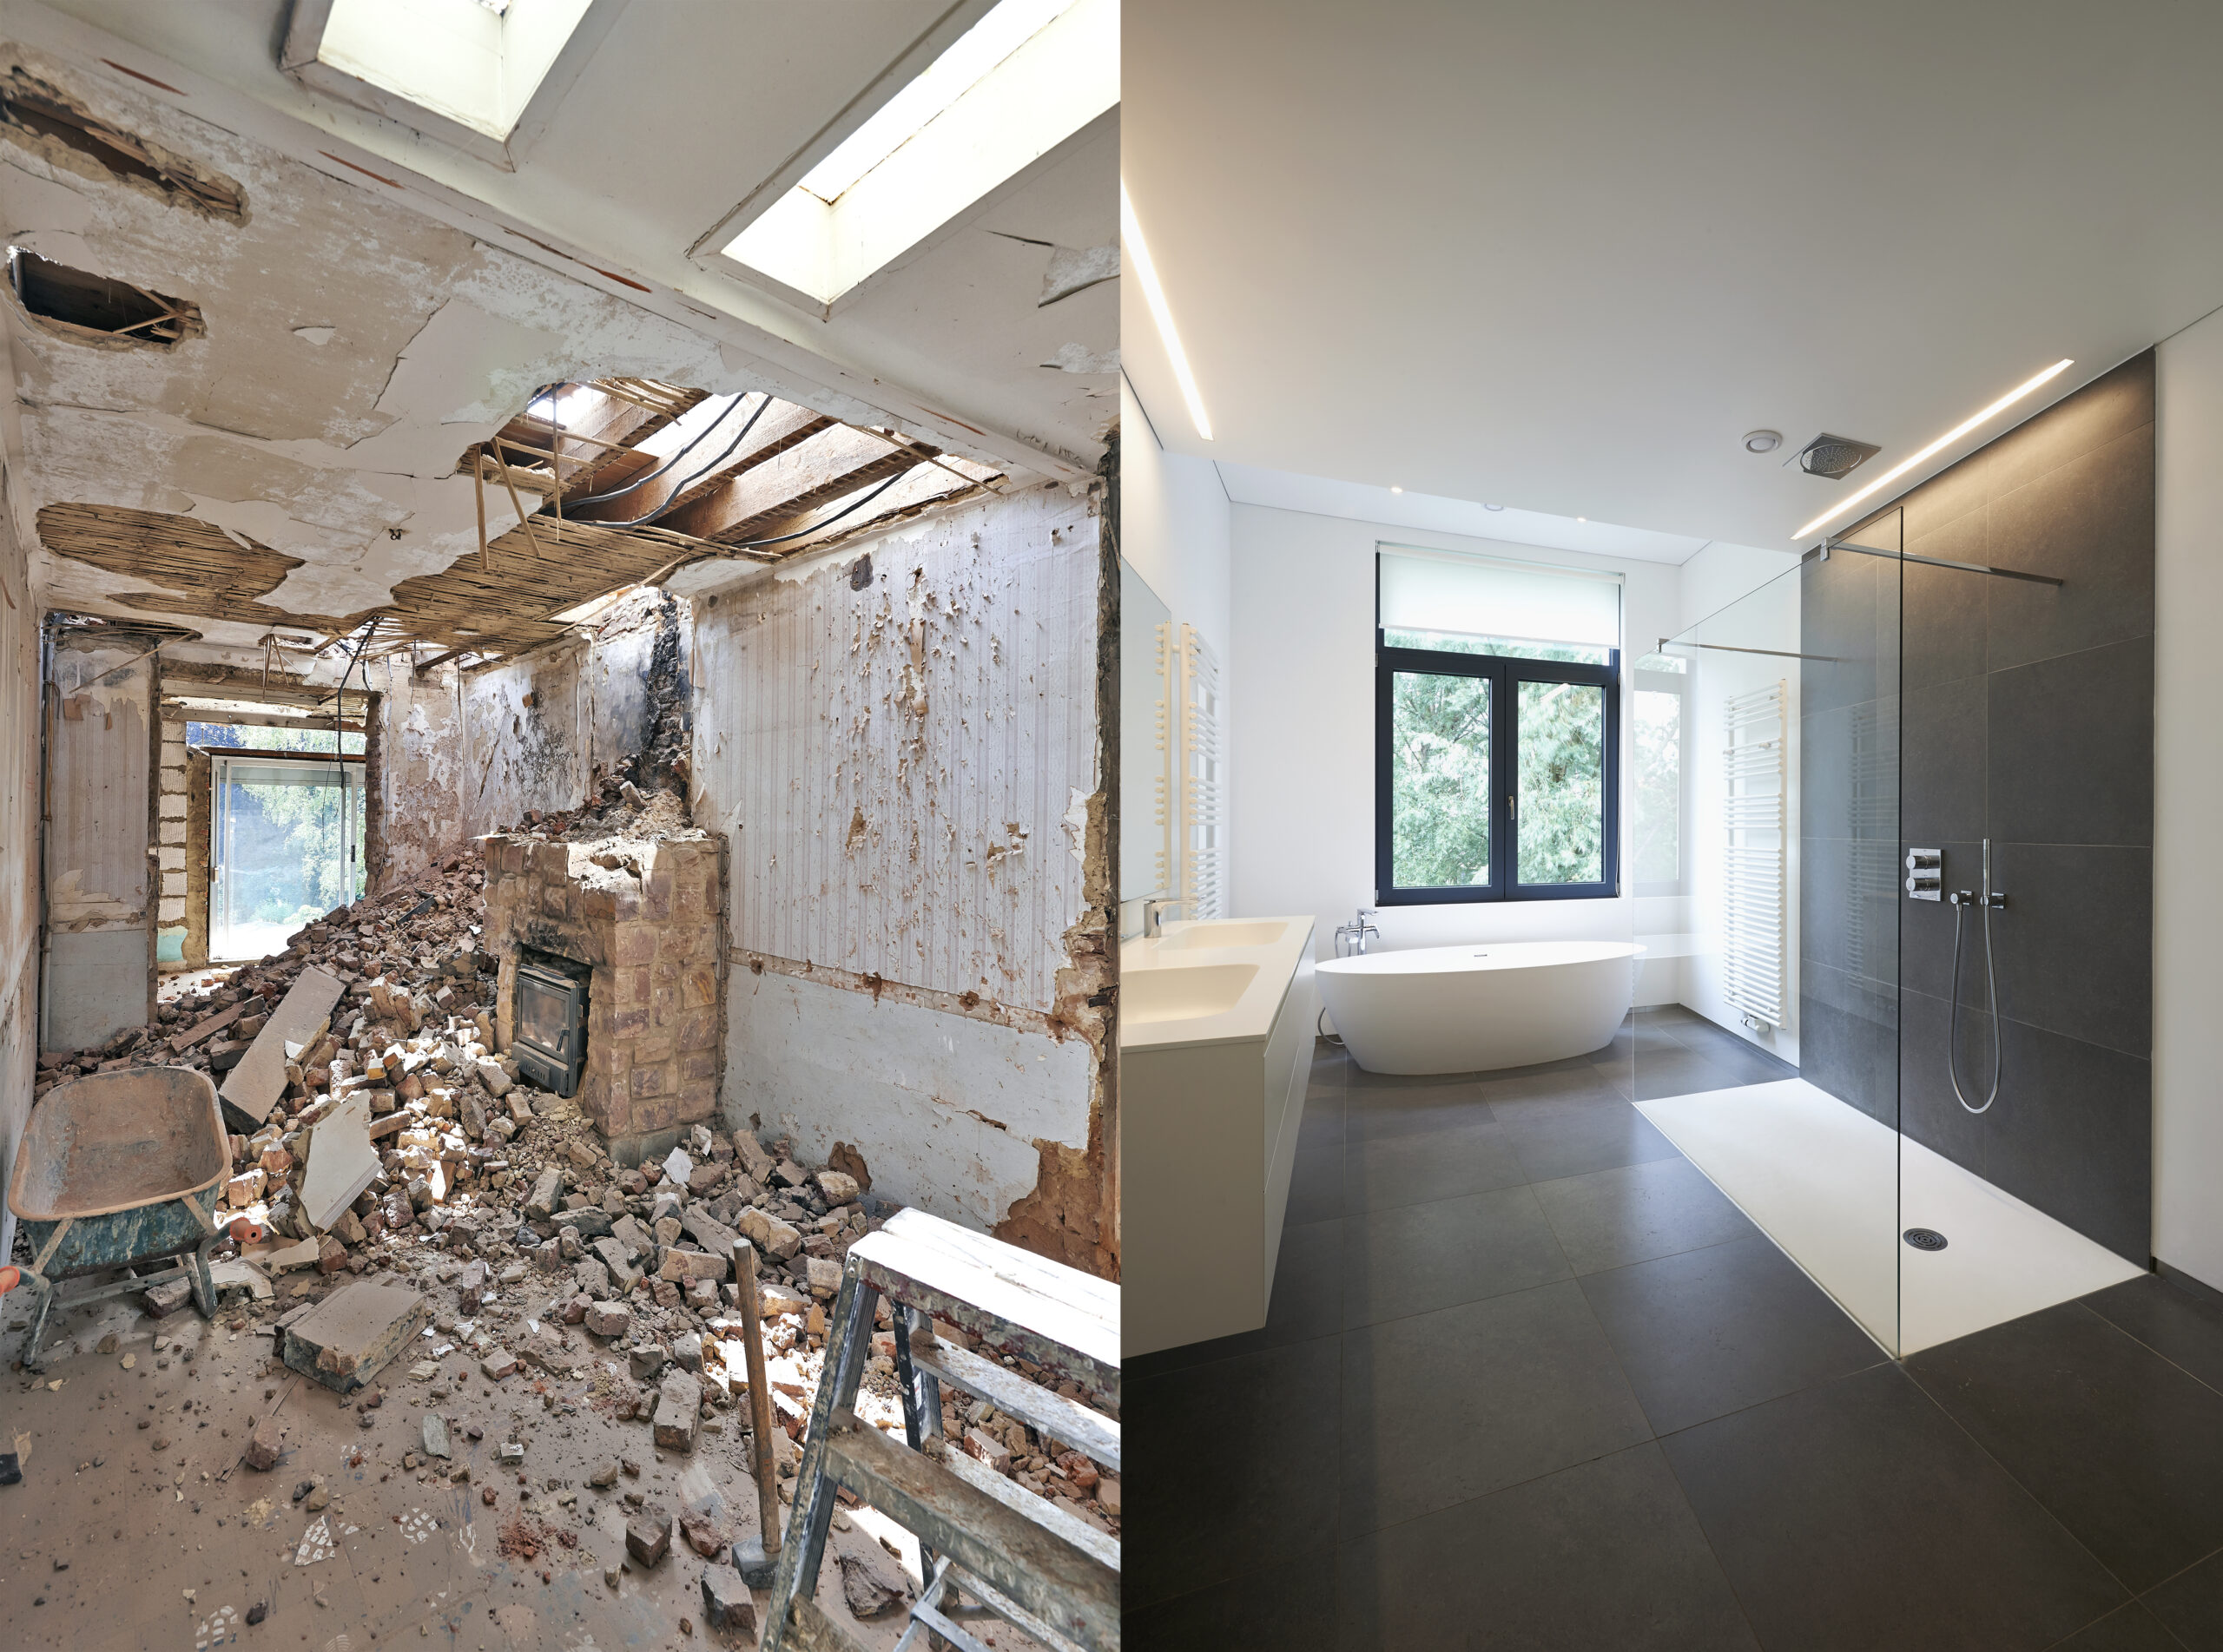 Bathroom Renovation – How to Do It Properly